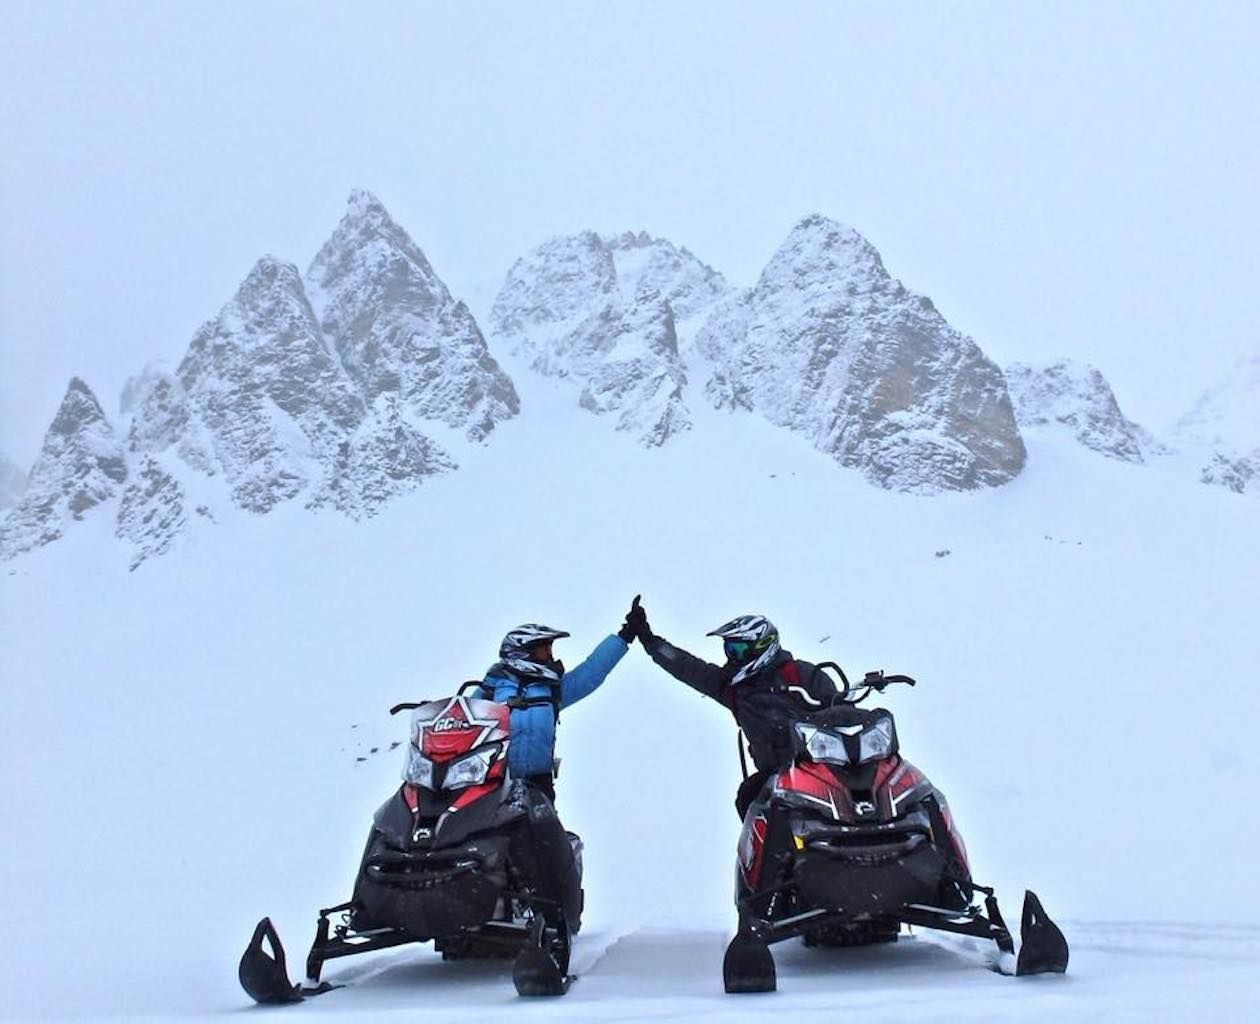 Rocky Mountain Riders Snowmobile Tours and Rentals